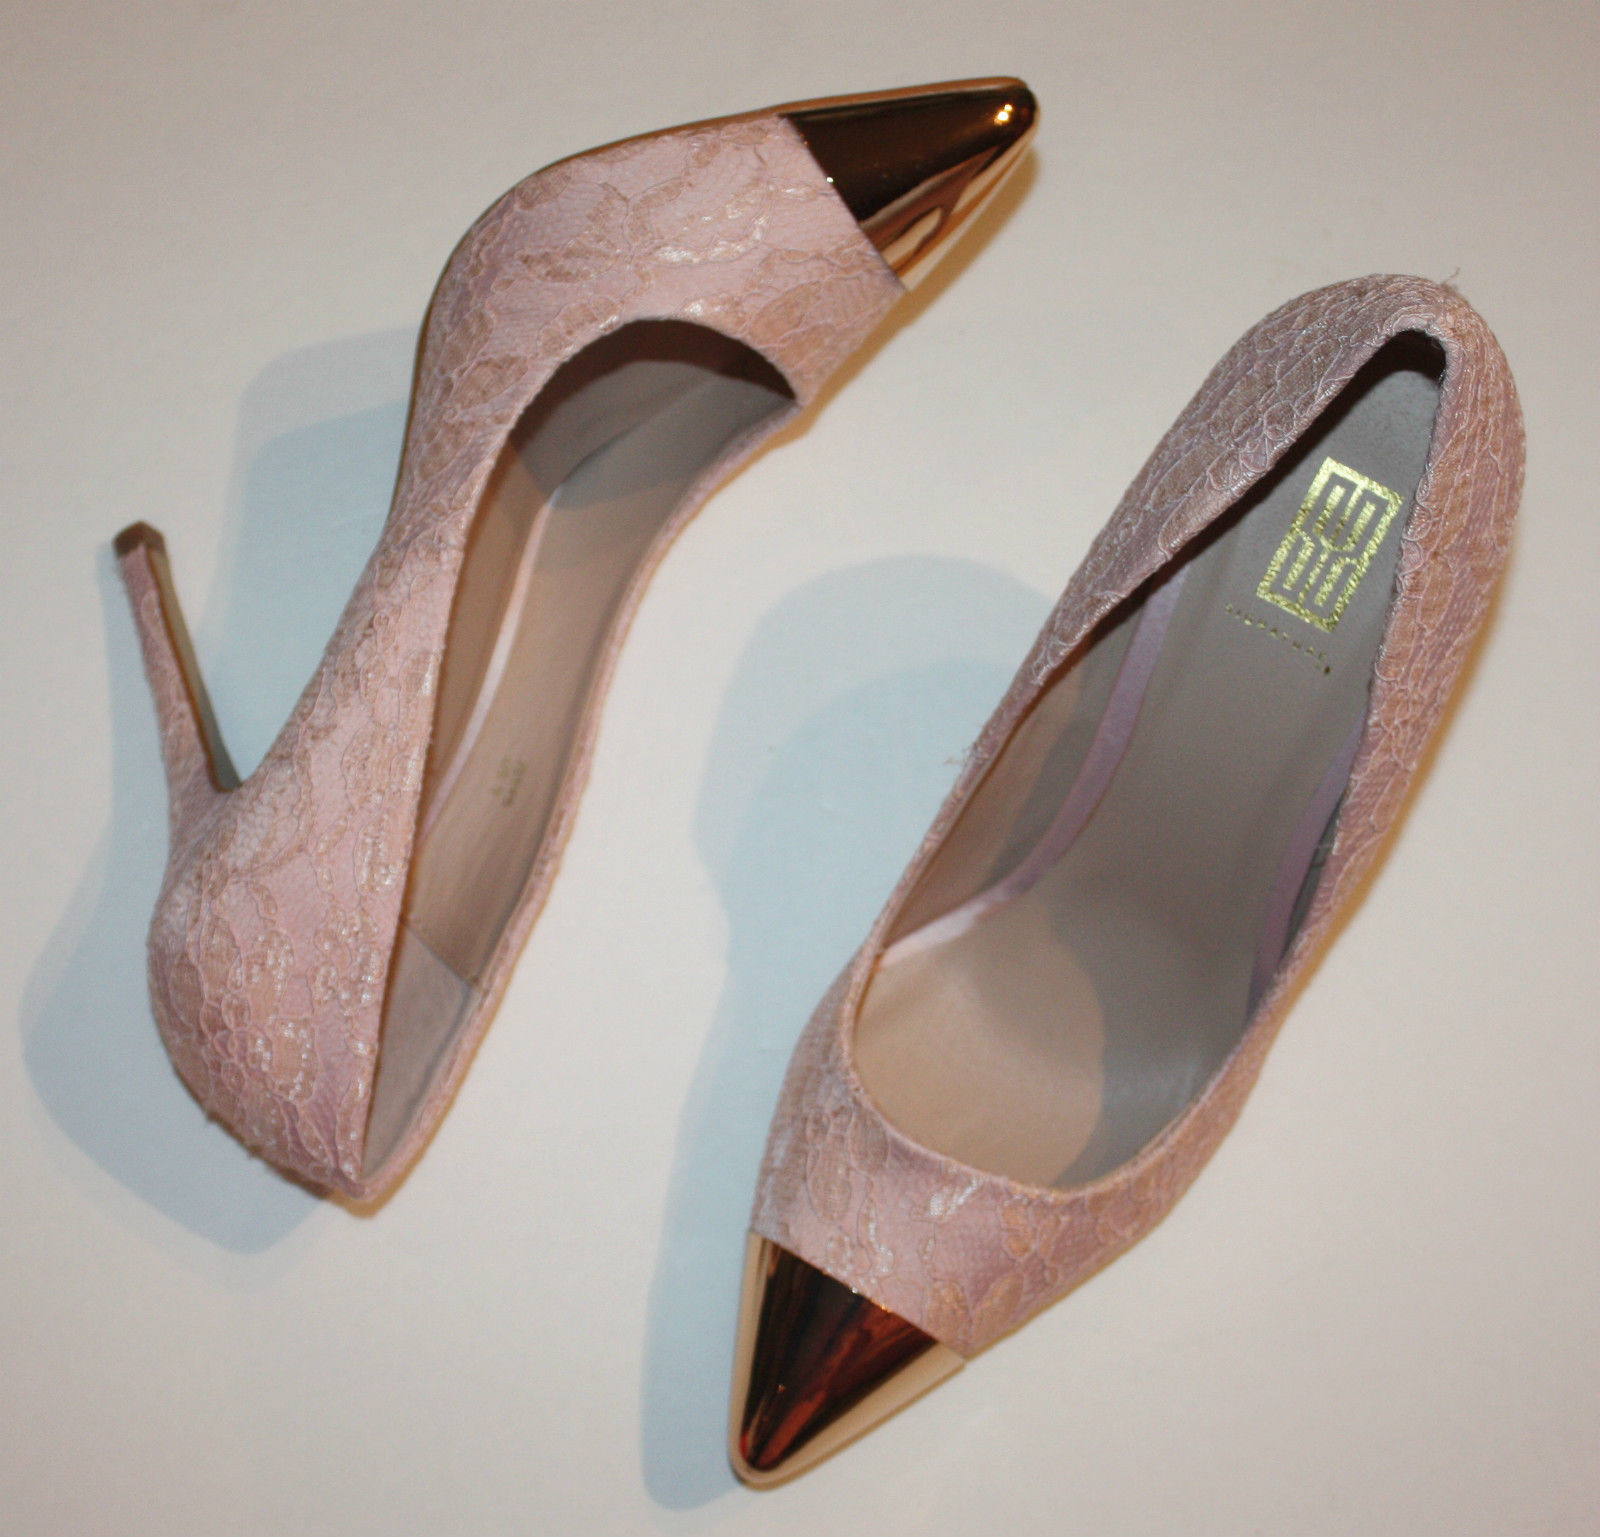 Shoedazzle Signature Issys Pink Blush Heels and similar items